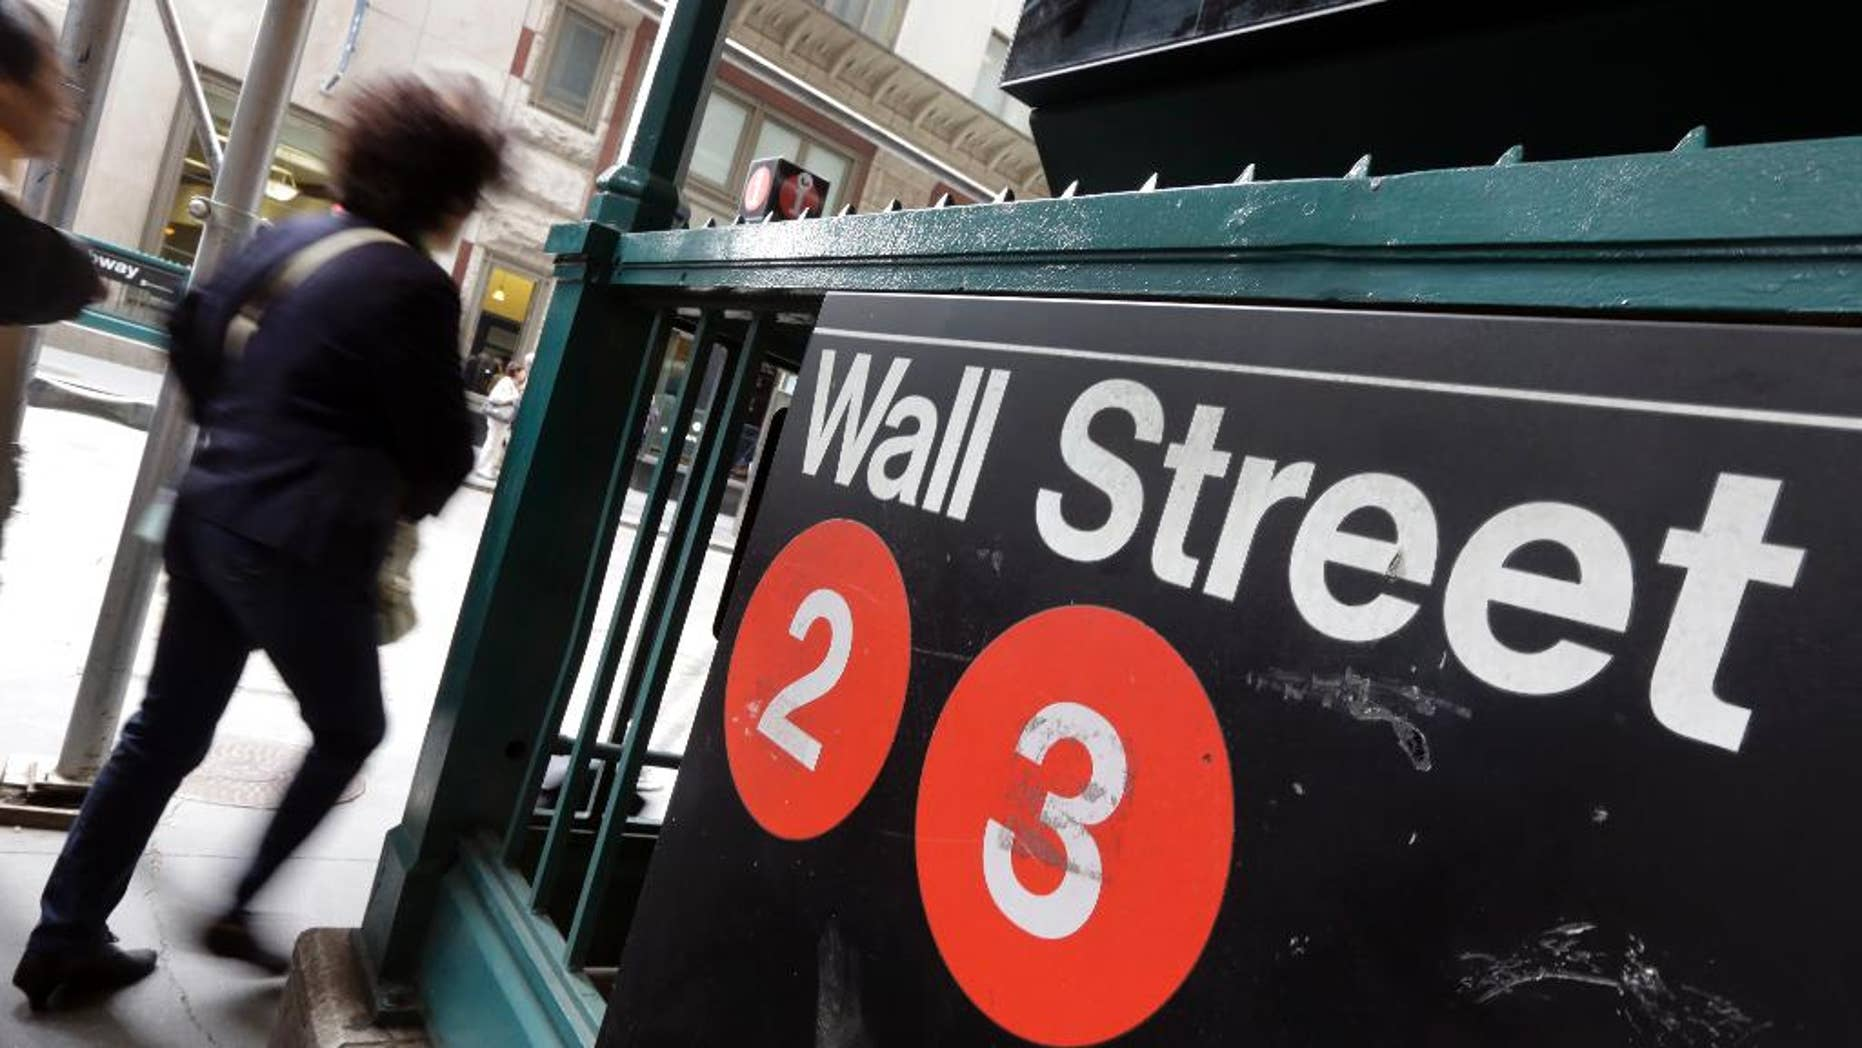 FILE - In this Oct. 2, 2014 file photo, people pass a Wall Street subway stop, in New York's Financial District. U.S. stocks moved lower in early trading Tuesday, March 31, 2015, erasing some gains from the day before. (AP Photo/Richard Drew, File)